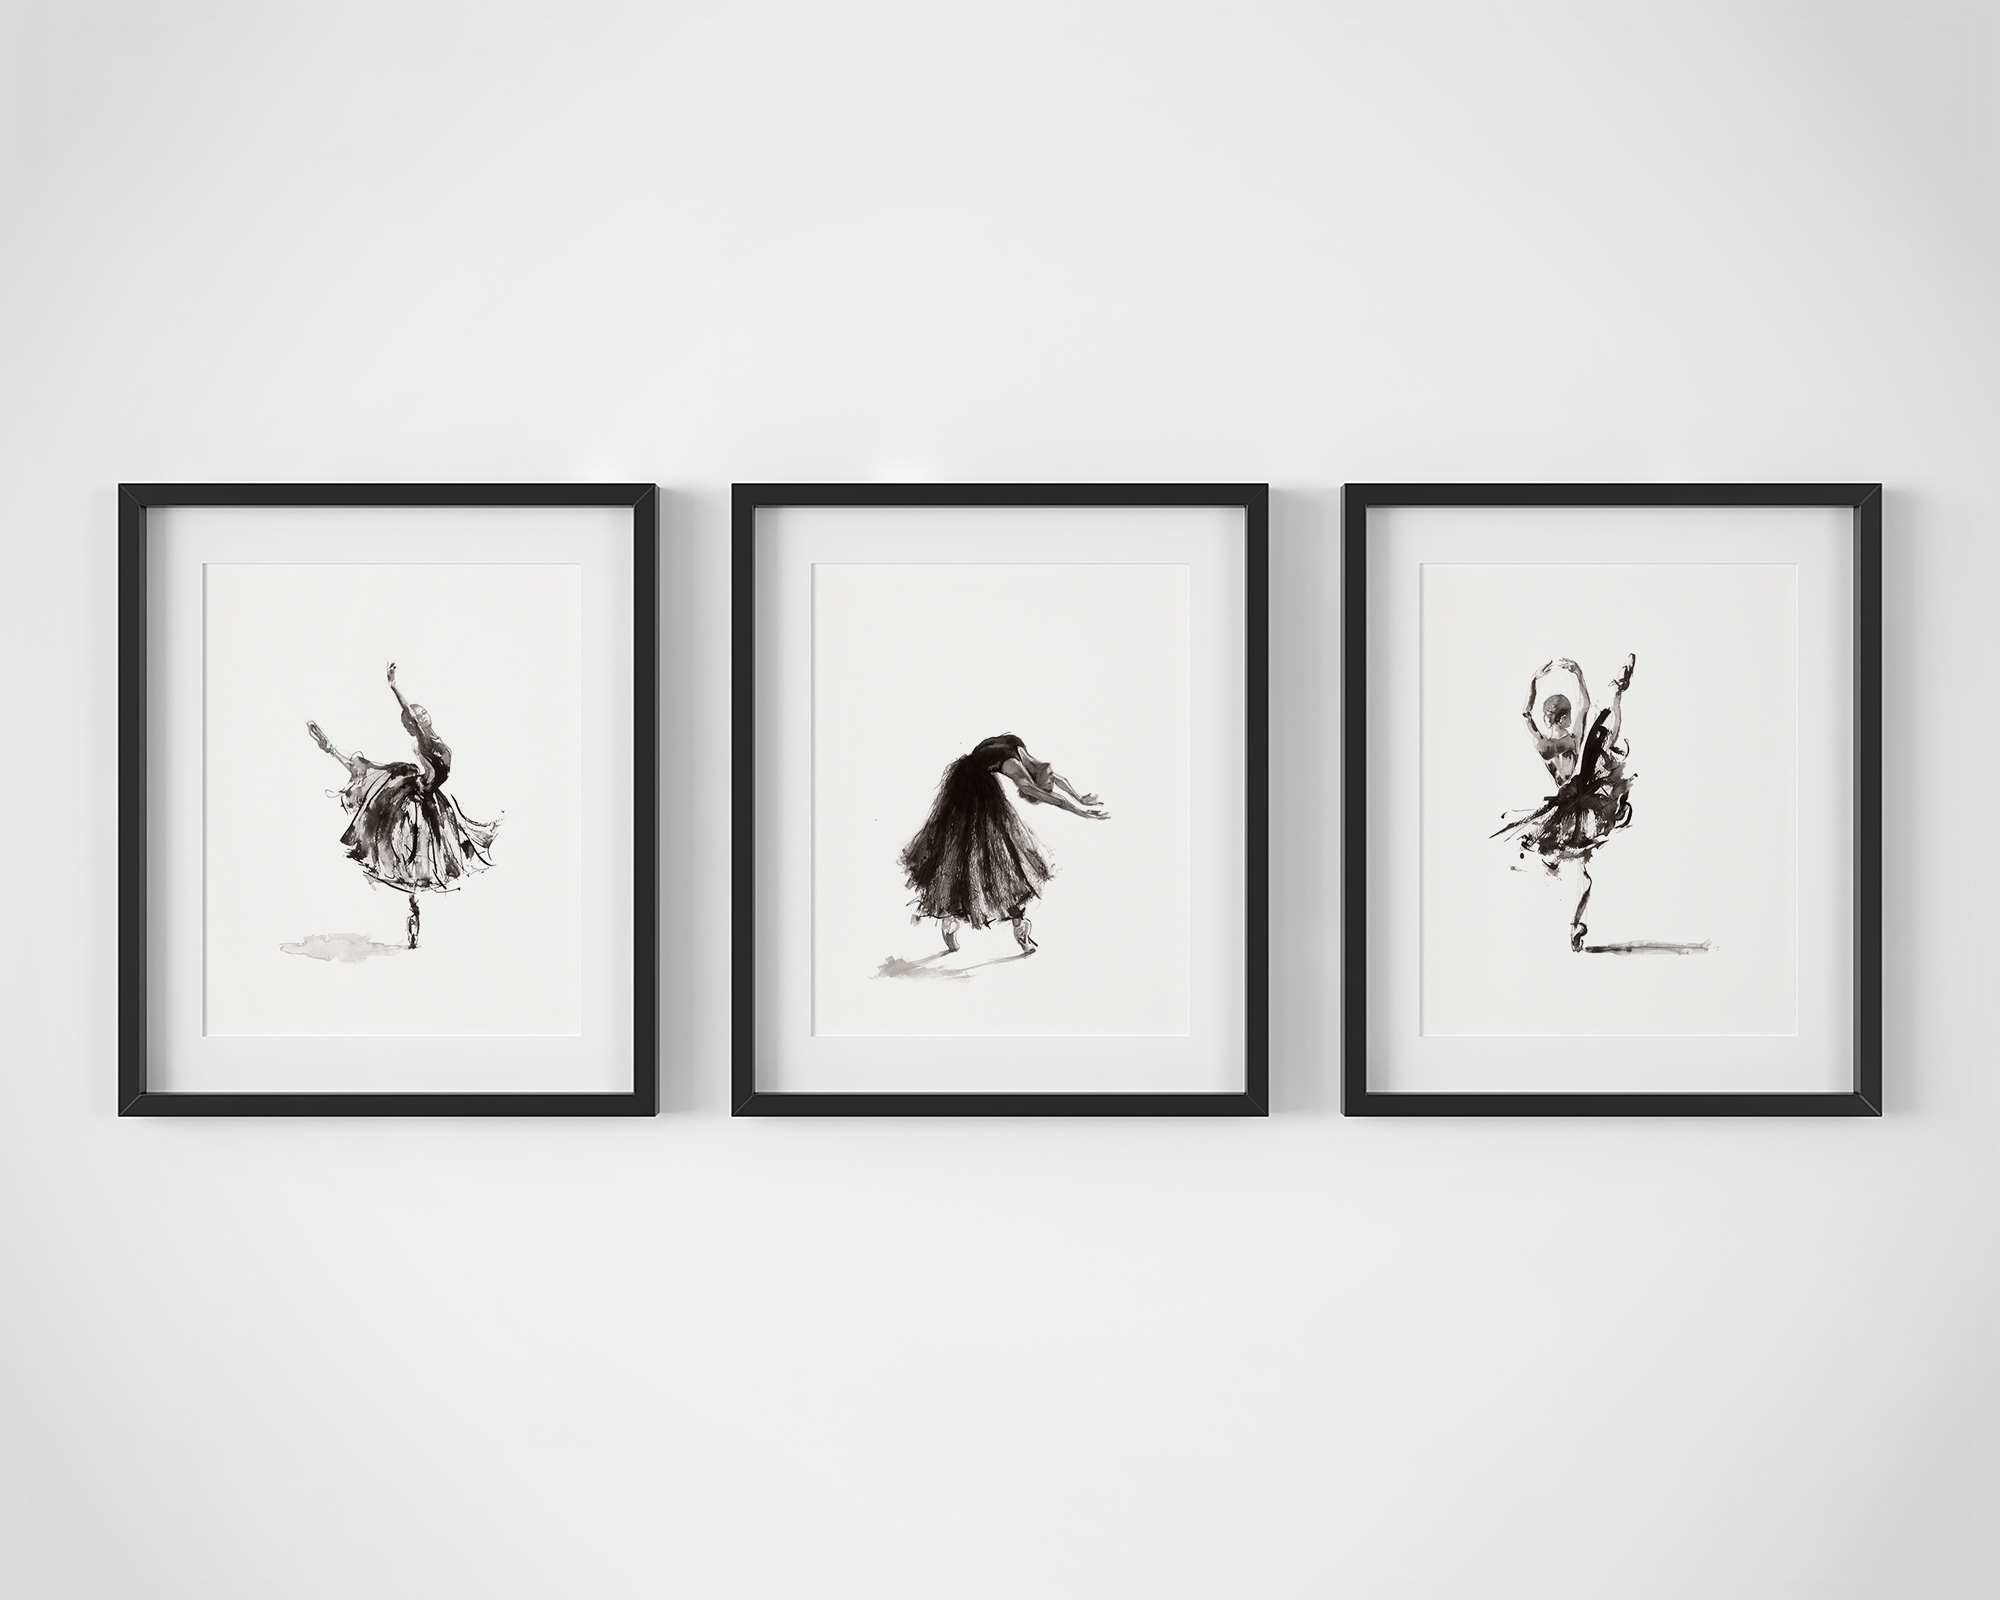 Set of 3 Ballet Dancer Fine Art Prints by Artist, Dana Trijbetz.  Original Ink Paintings made as Giclée Prints on 100% Cotton Paper.  Set Includes 'Symphony', 'Catharsis' and 'For the Heart'.jpg